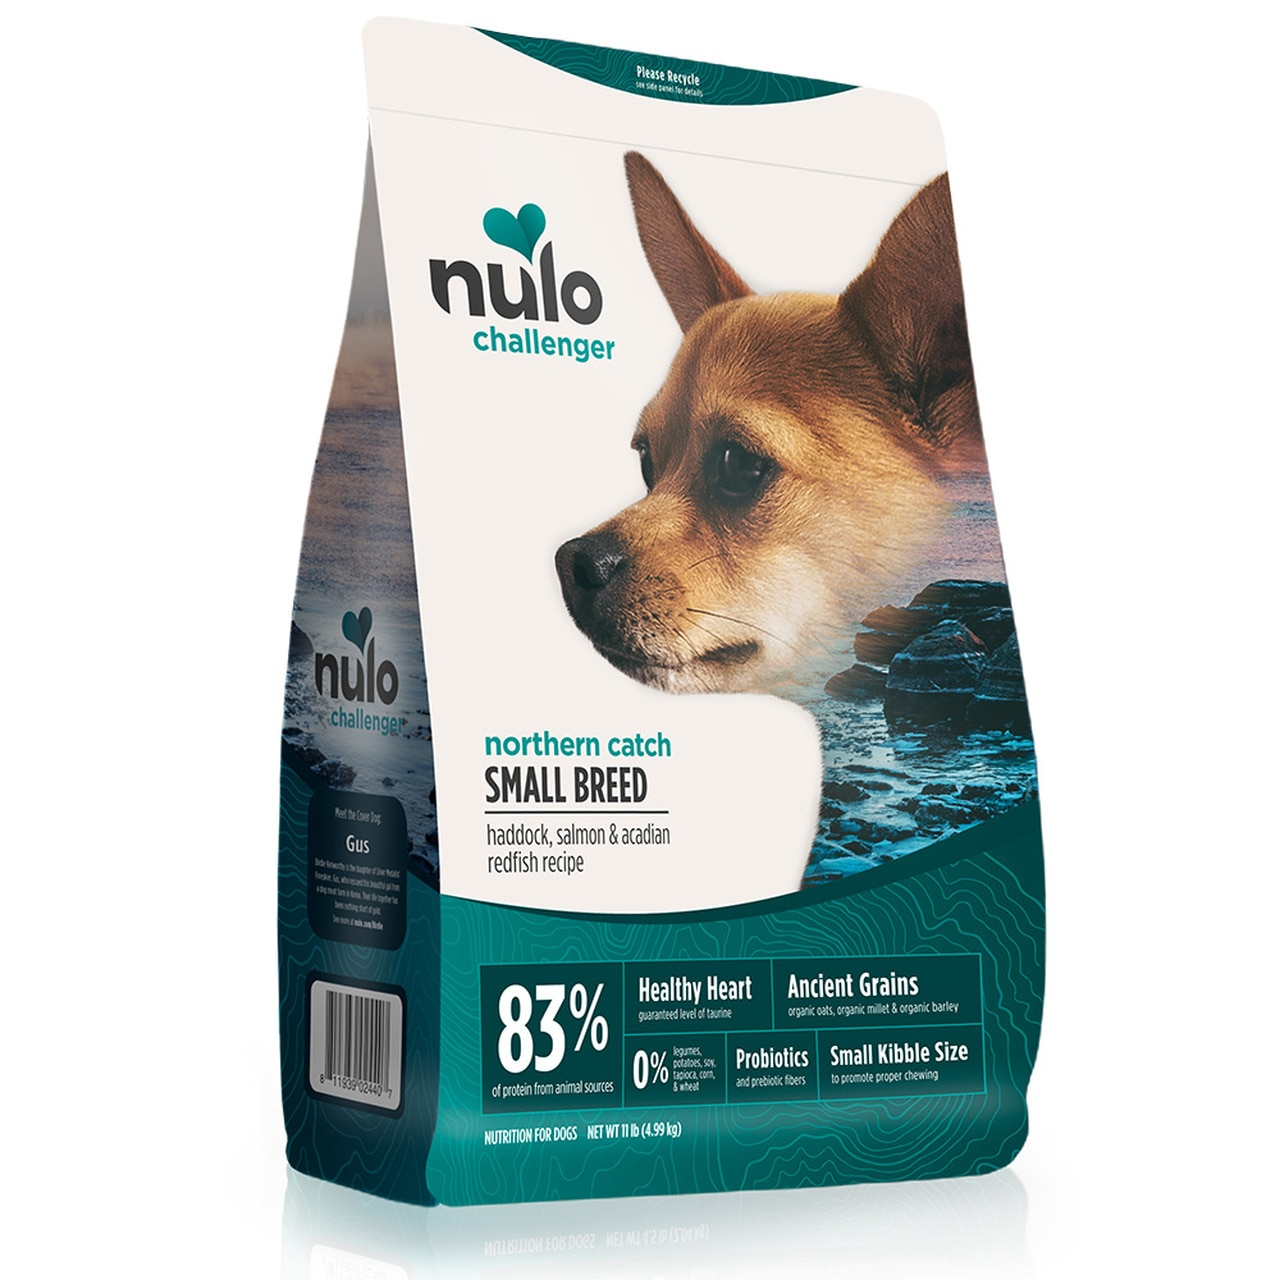 Nulo Challenger Northern Catch Haddok, Salmon & Redfish Small Breed Dry Dog Food, 4.5-lb